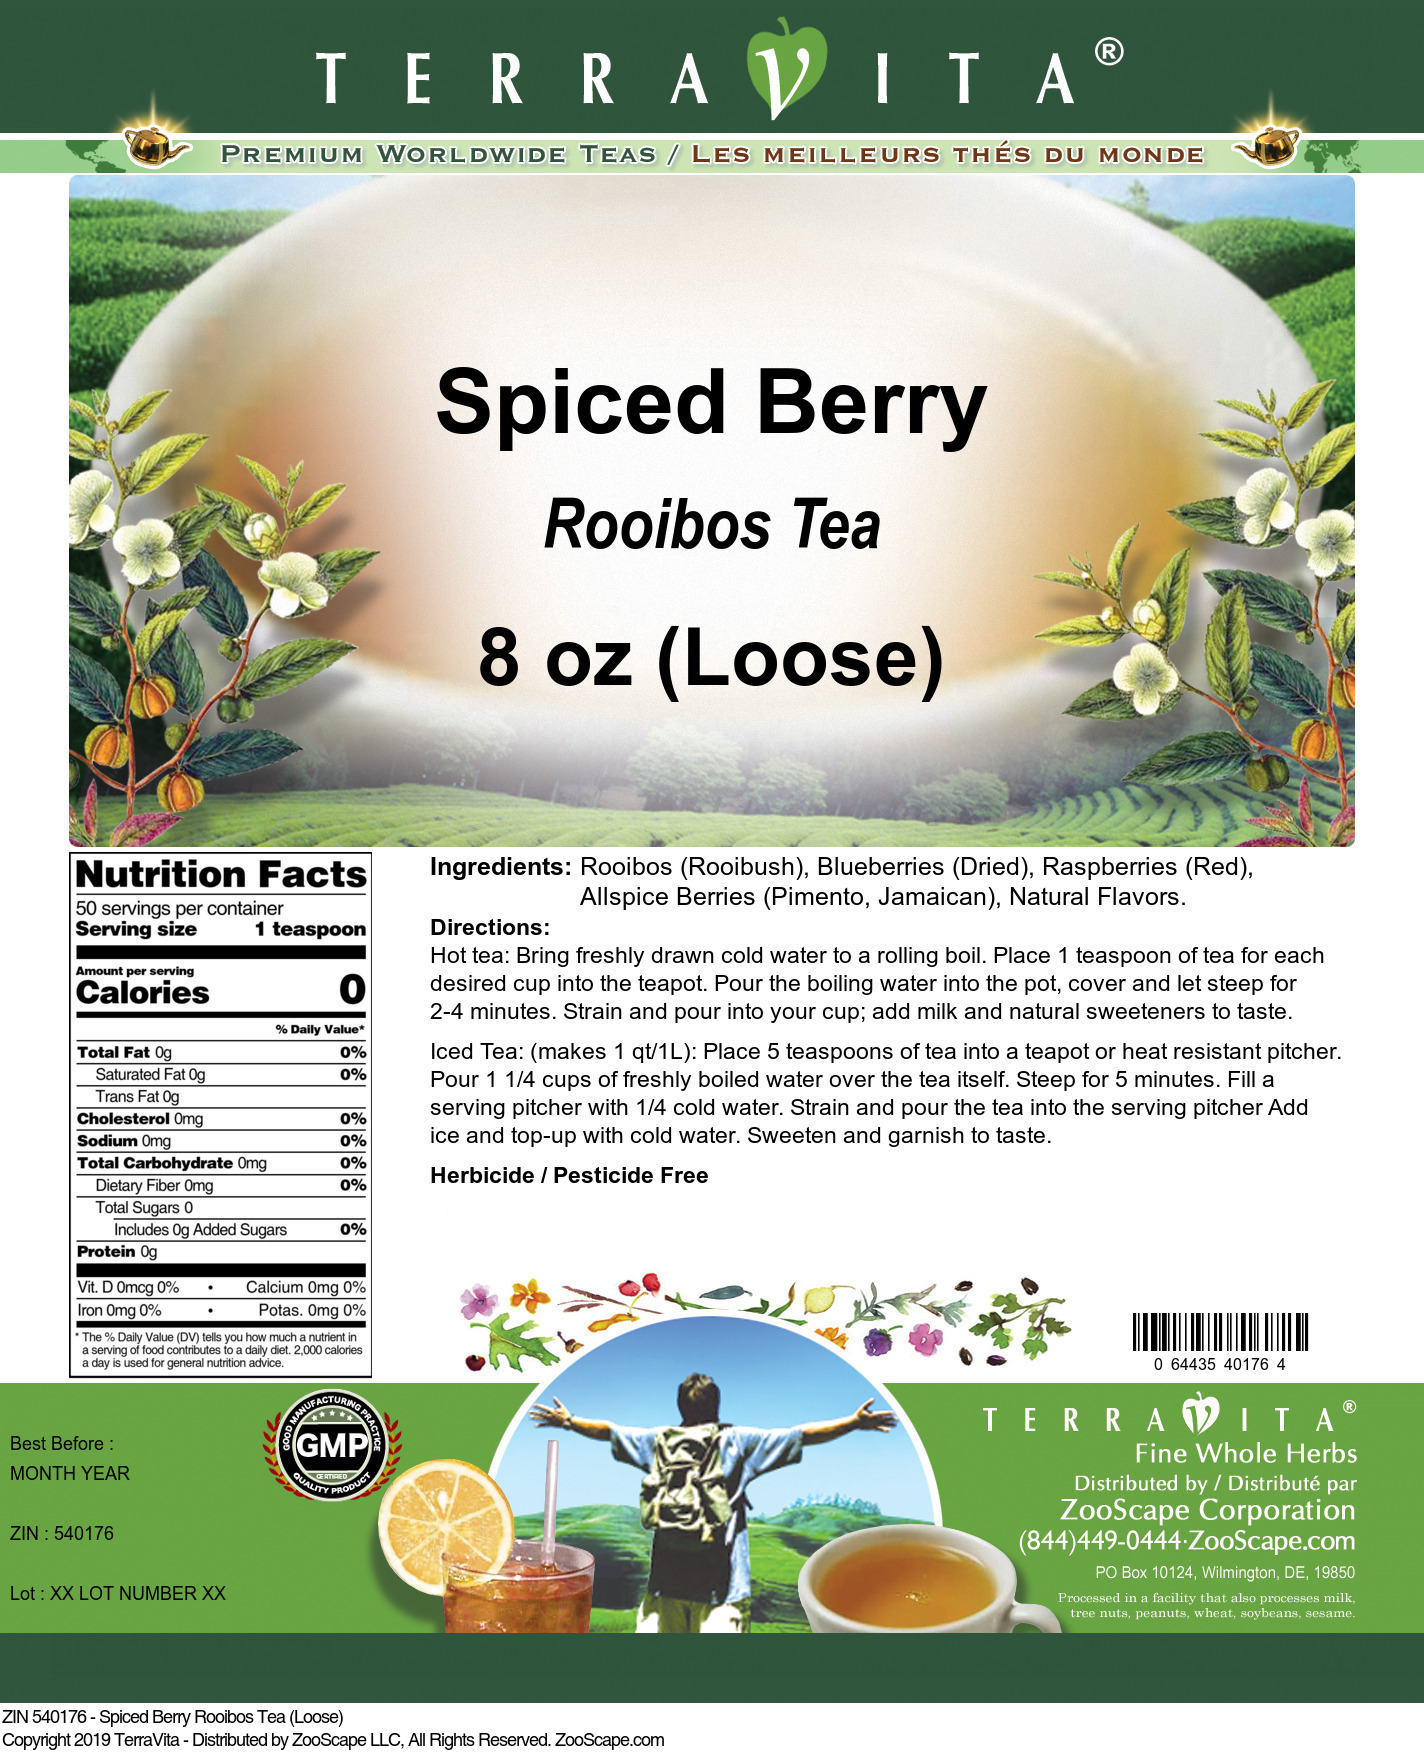 Spiced Berry Rooibos Tea (Loose)